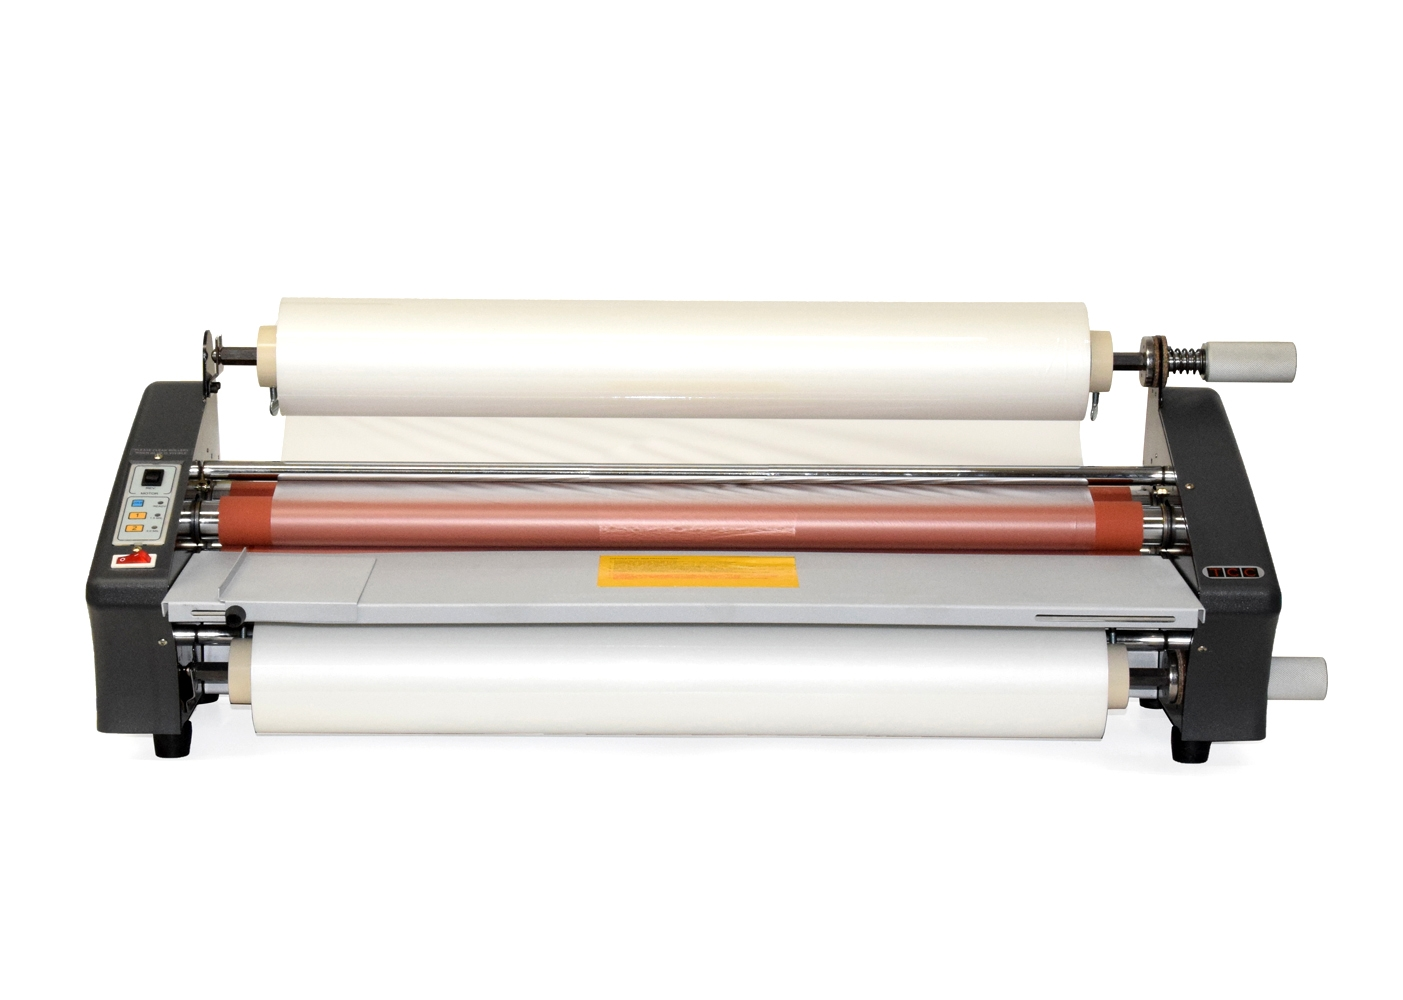 "Hop Industries 27"" School Roll Laminator (TCC-EASY1) Image 1"